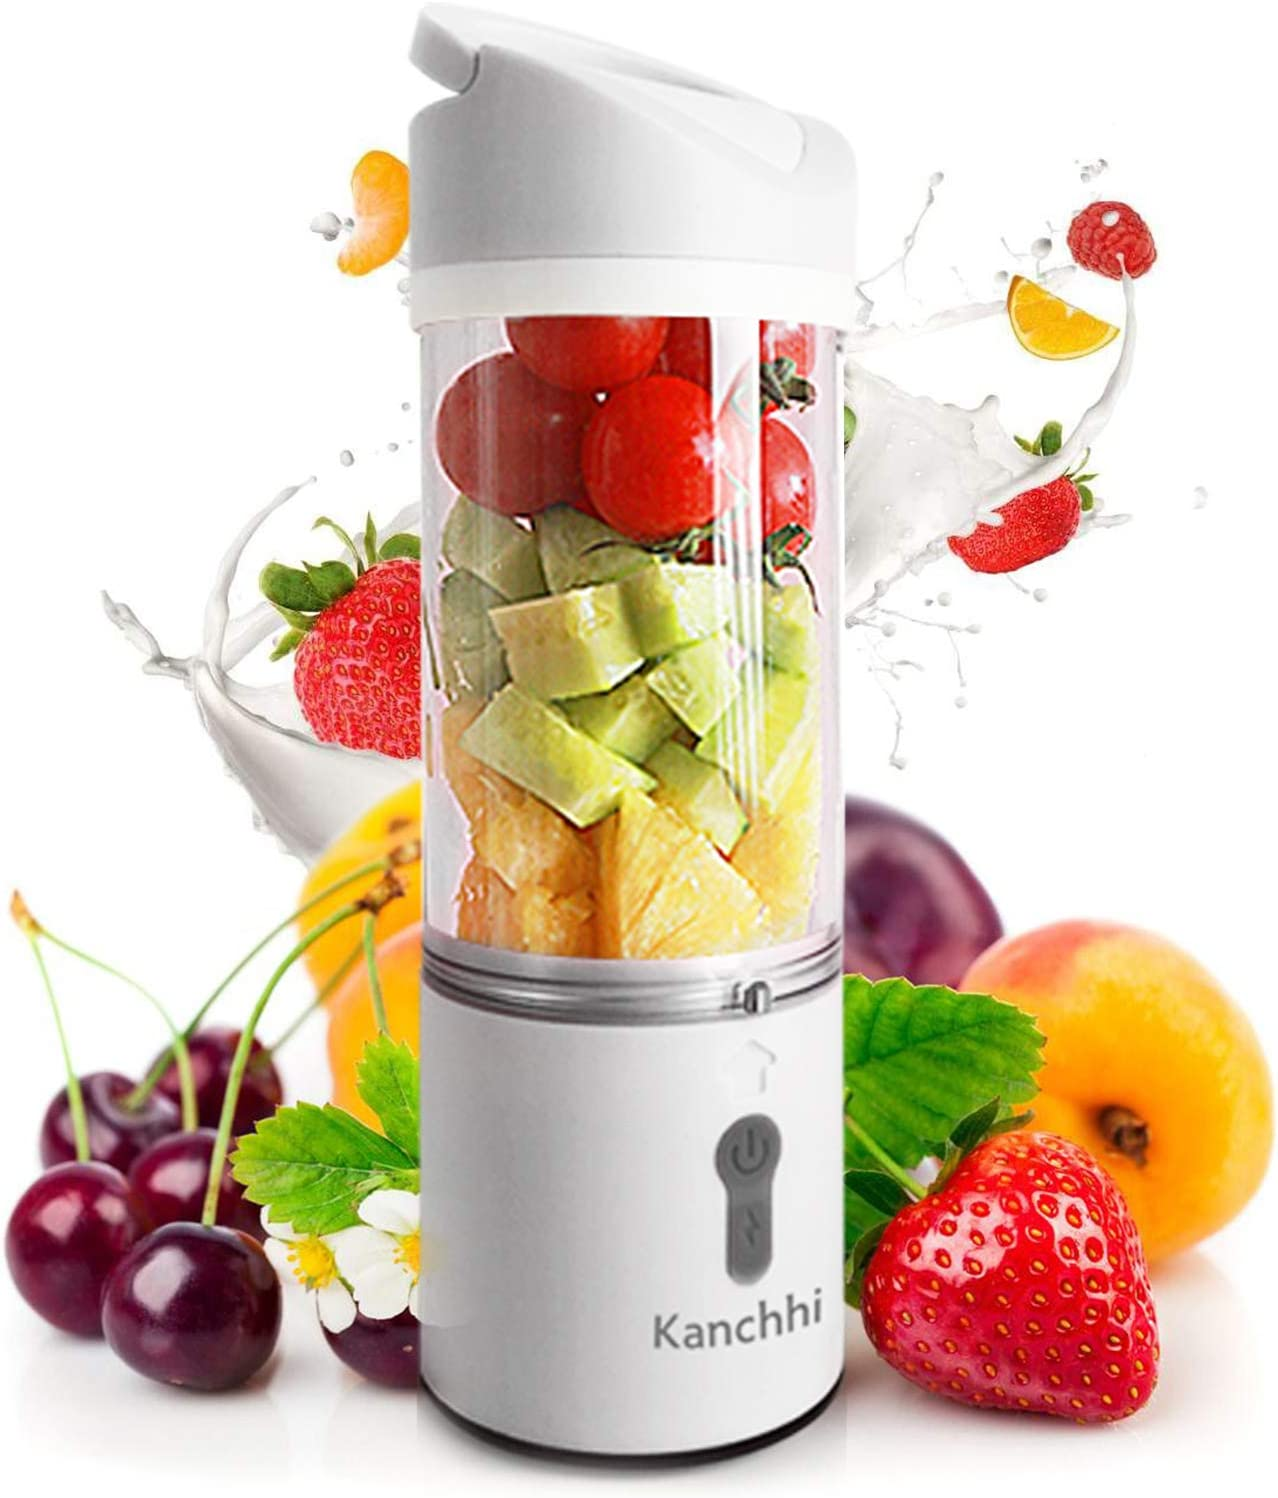 Portable Personal Blender, Smoothie Portable Blender With 4 Blades, Juicer Cup USB Rechargeable Mini Blender 11Oz Fruit Mixing Machine For Juice, Shaker, Smoothies, meat (White)